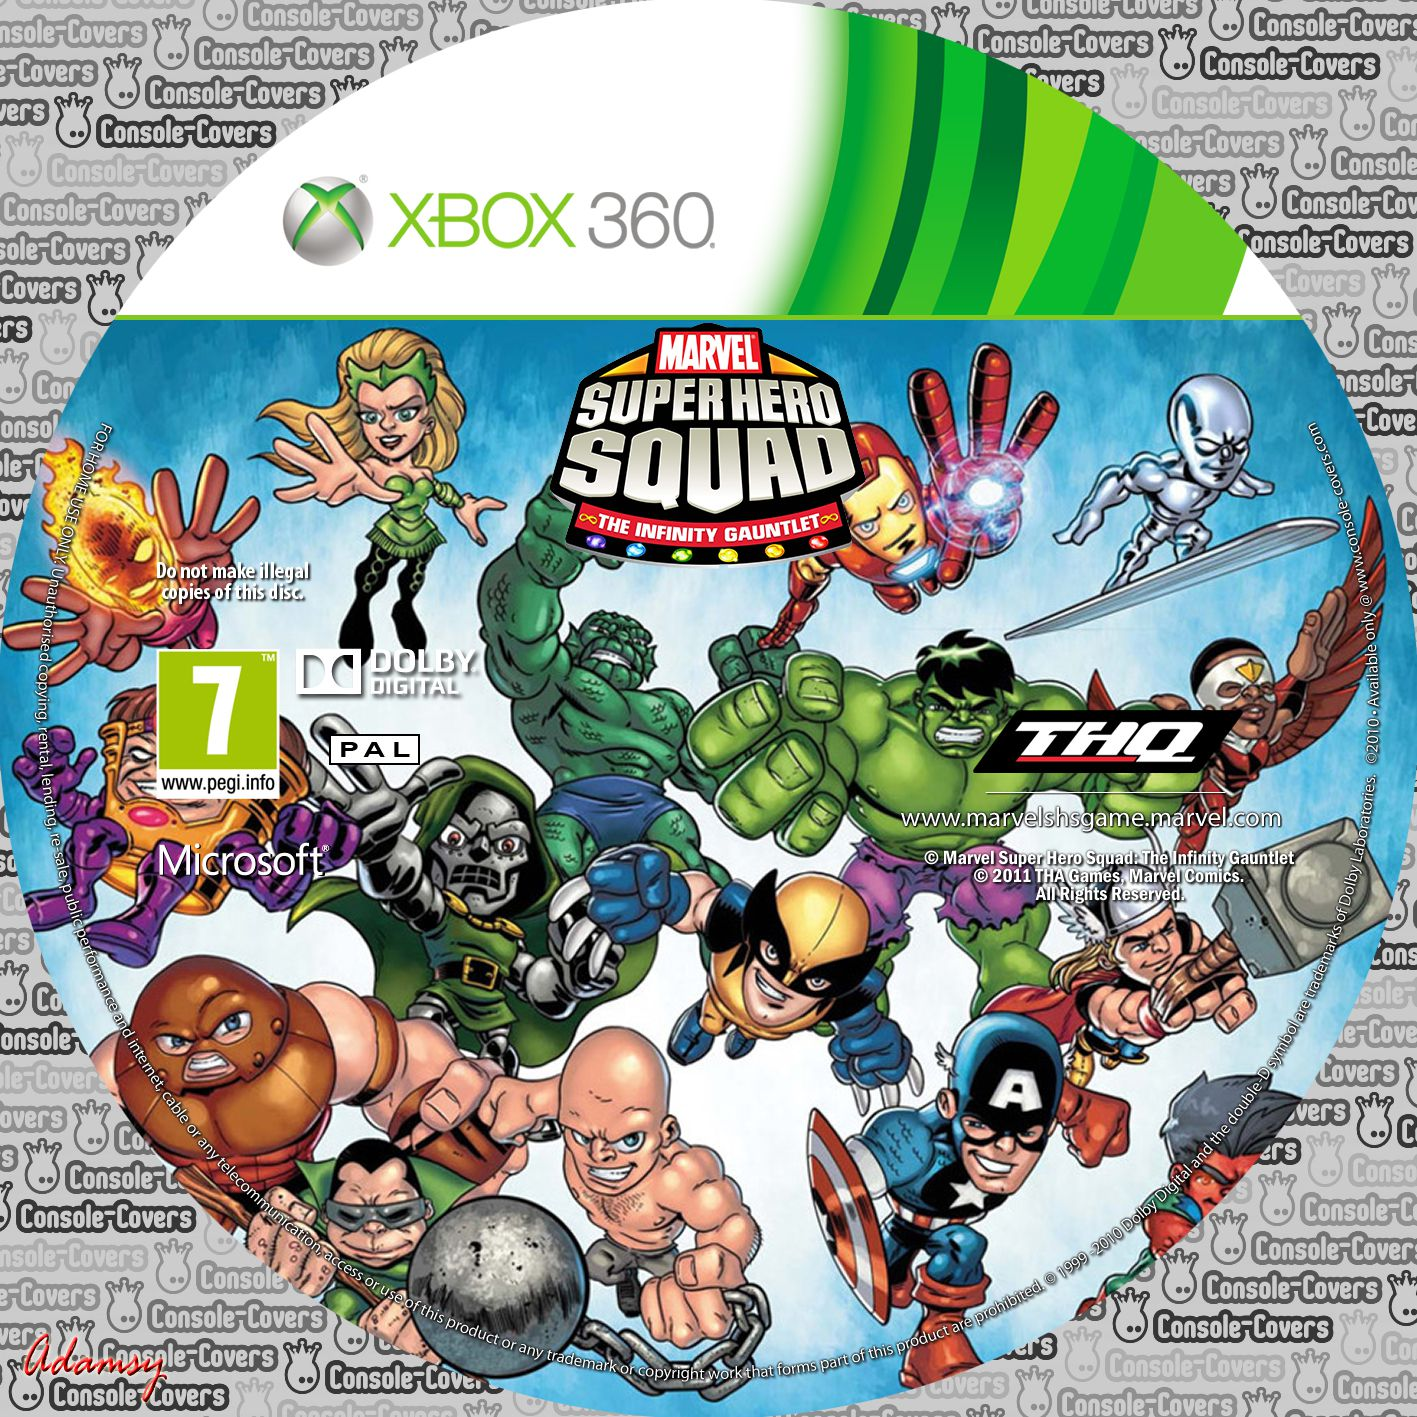 Label marvel super hero squad the infinity gautlet xbox 360